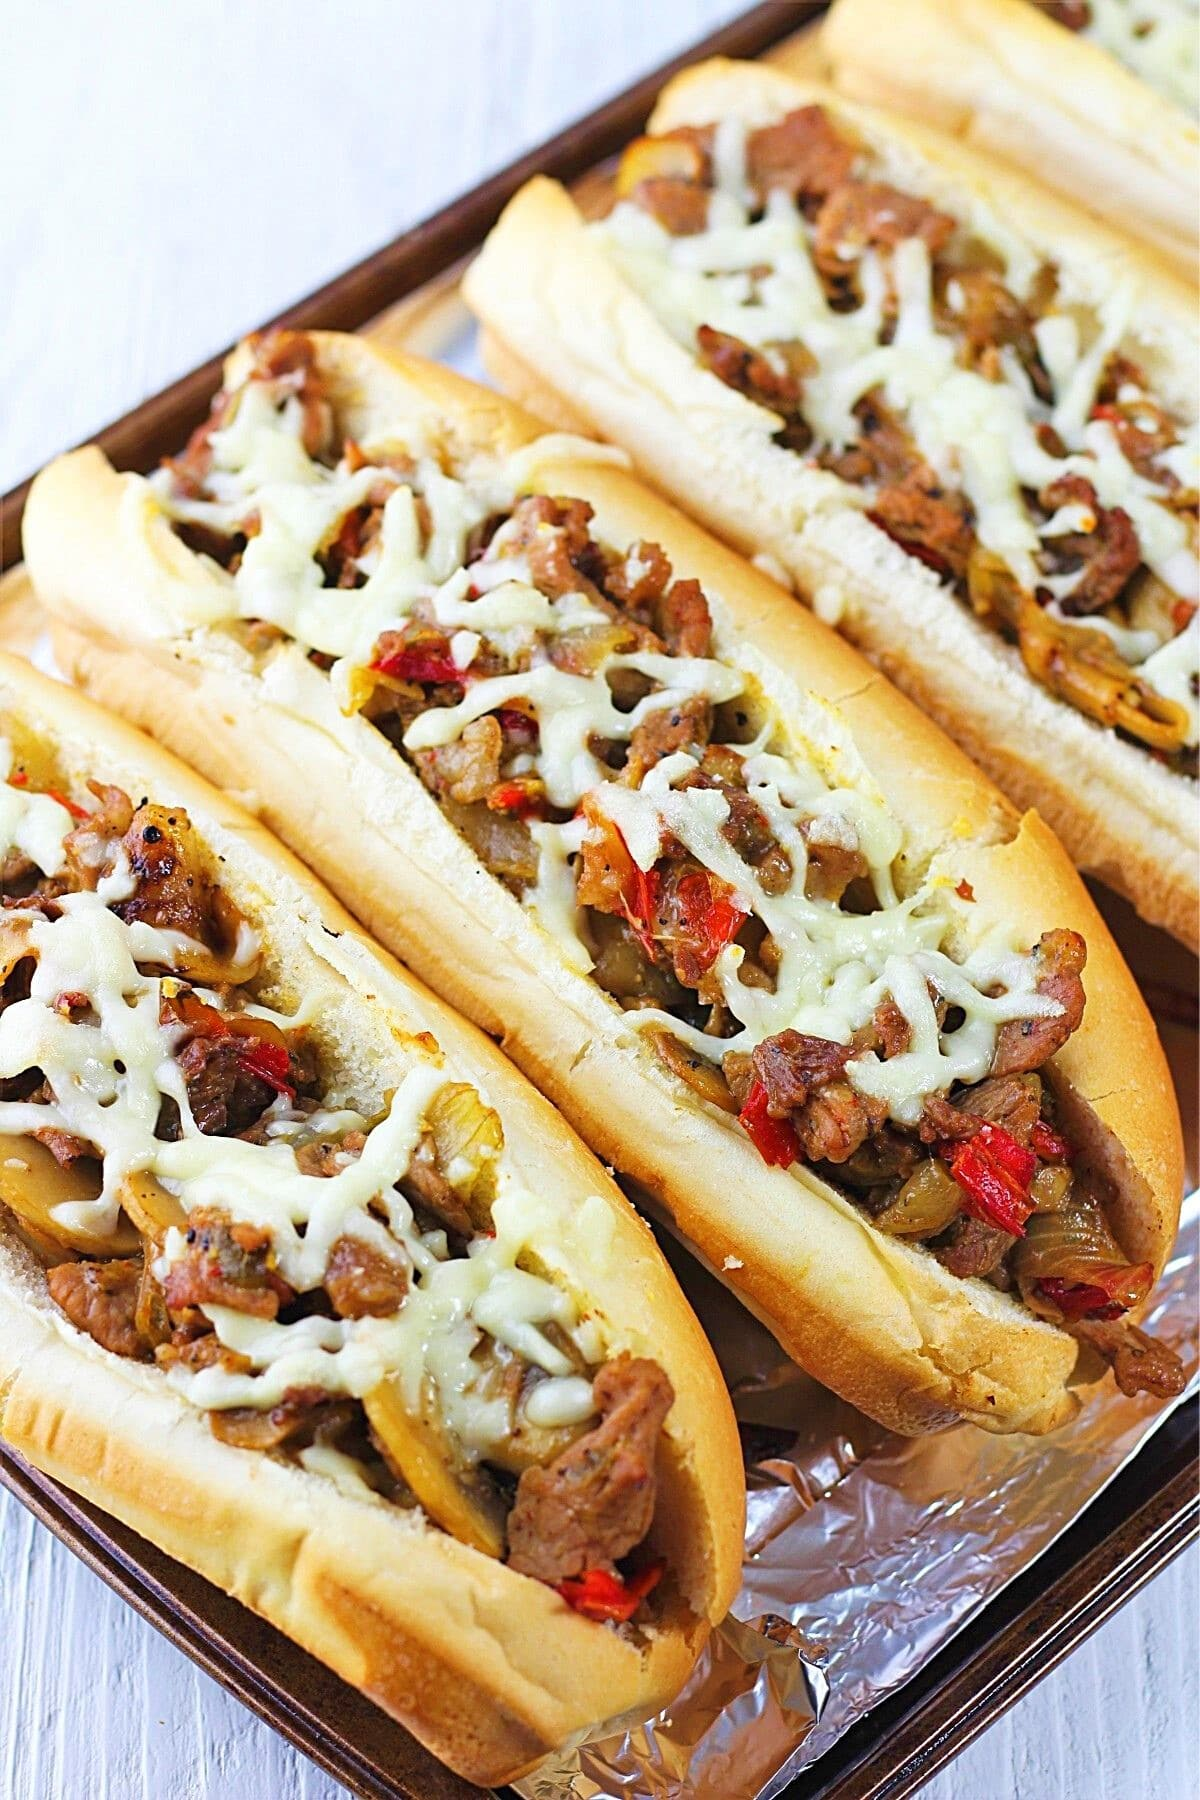 four cheesesteaks with mushrooms, onions and peppers on a baking sheet